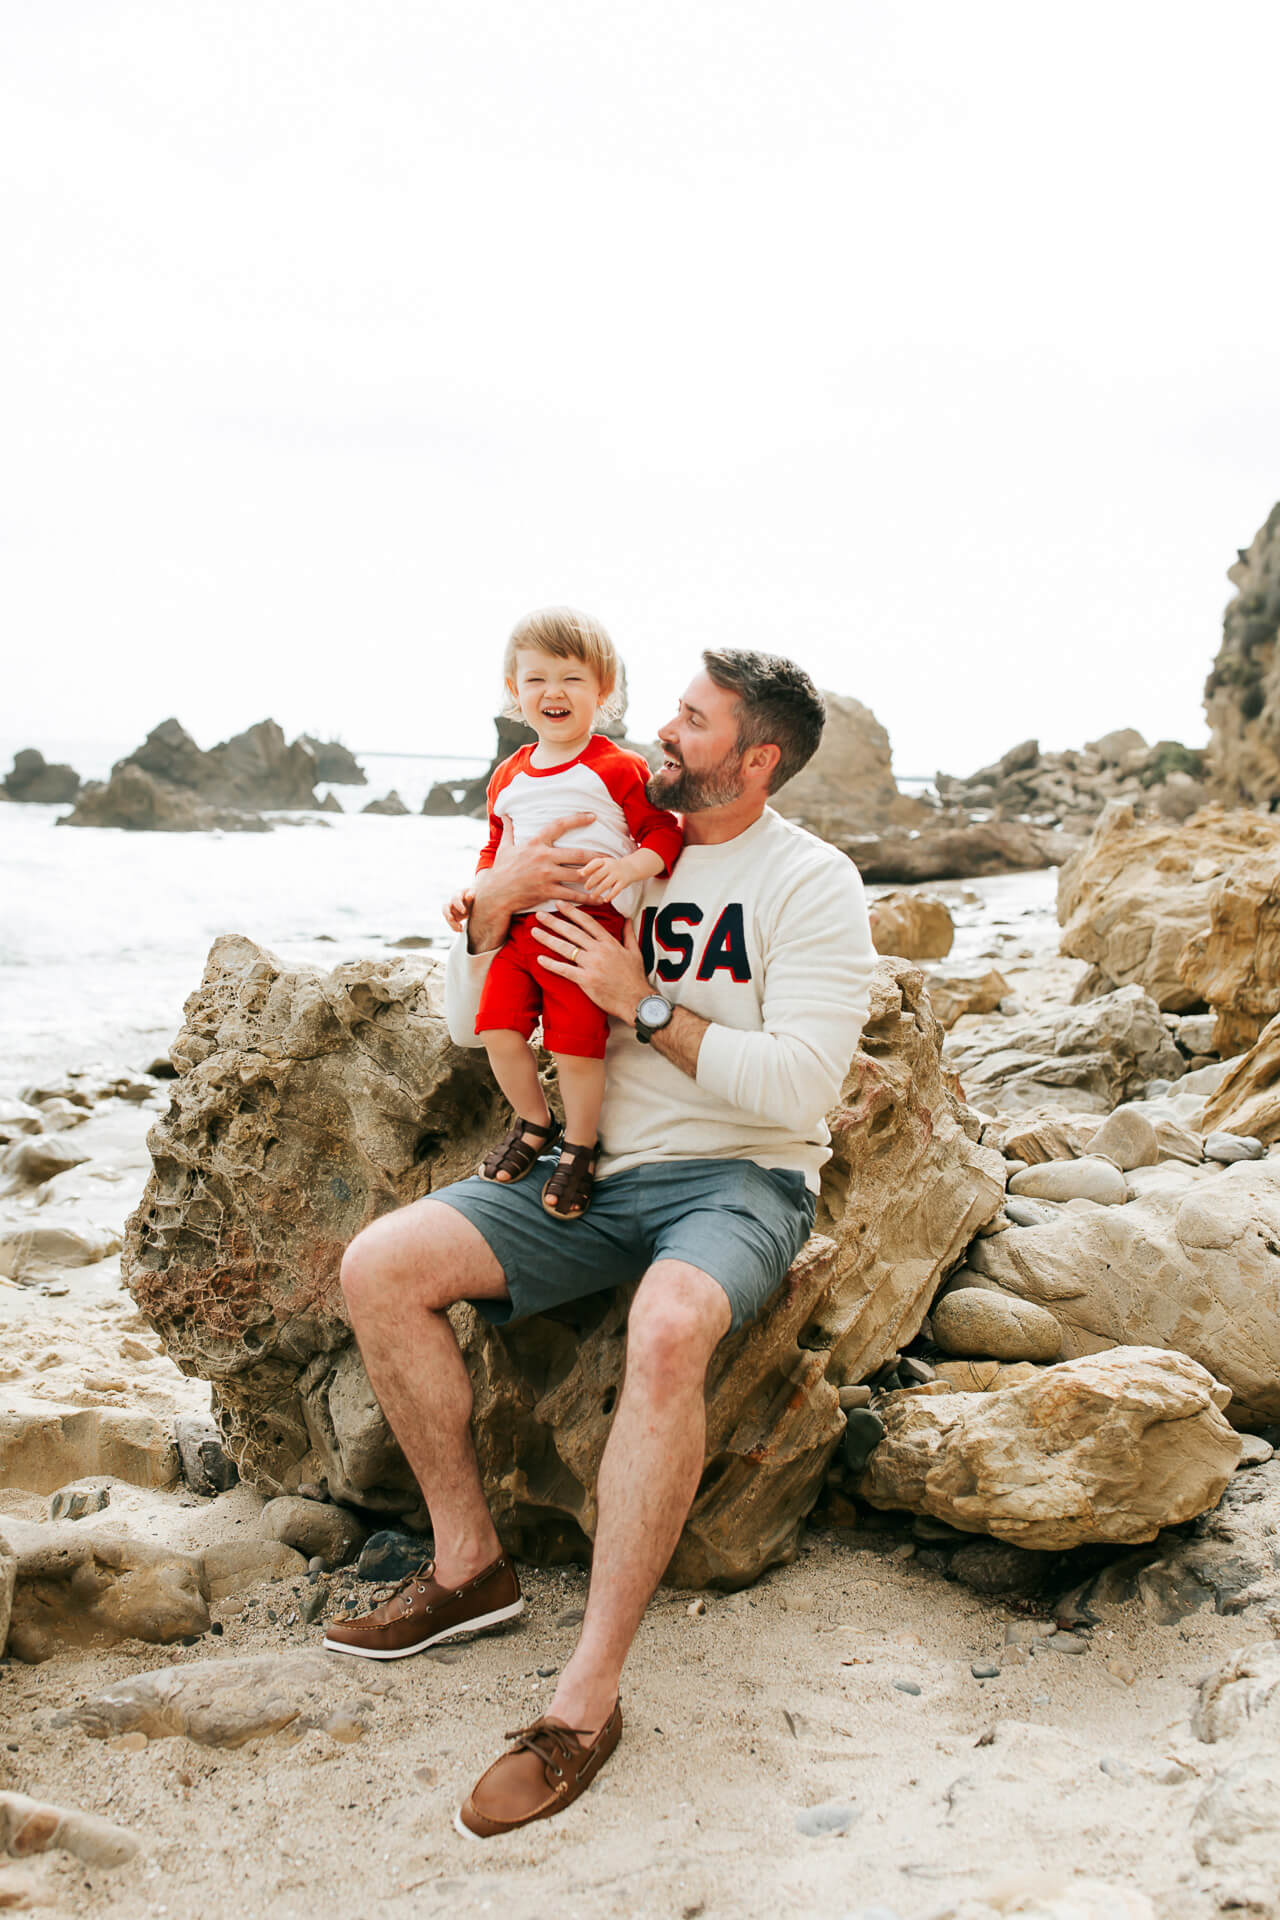 Having so much fun at a beach day with my family! | M Loves M @marmar